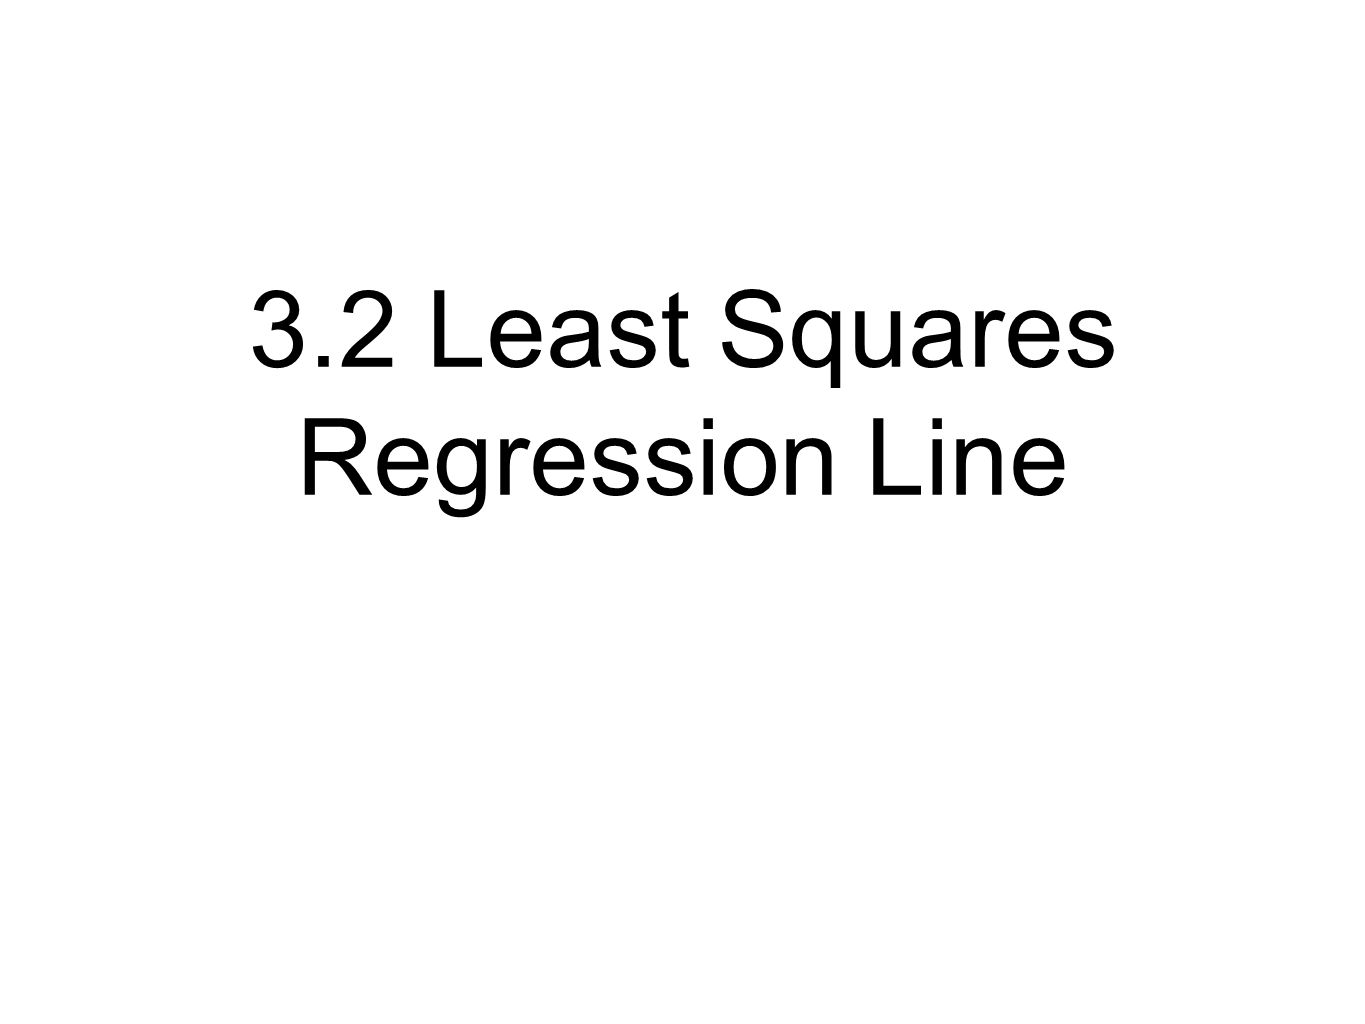 3.2 Least Squares Regression Line